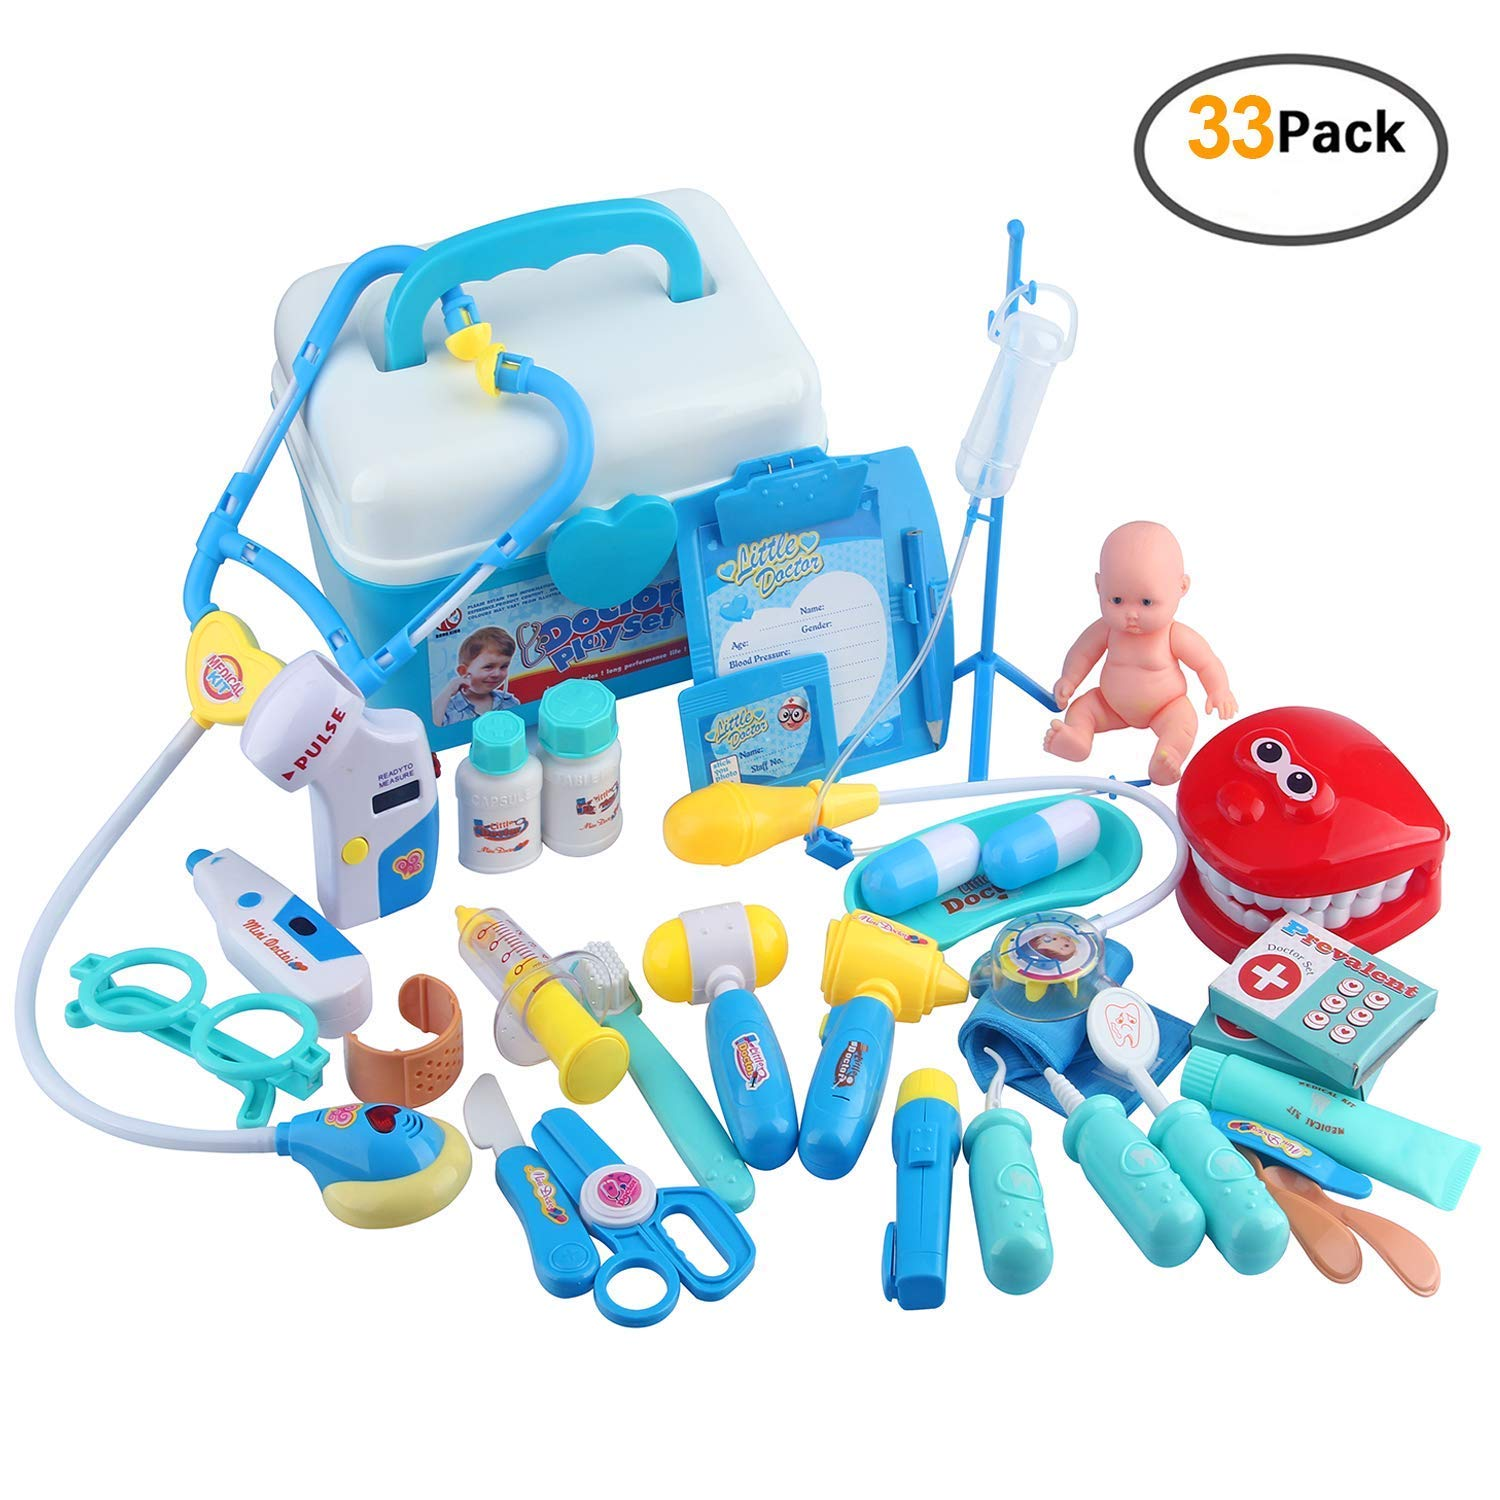 Doctor Kits for Kids with Stethoscope and Coat Medical Kit for Tolddlers, Pretend Doctor Playset 33 Pack for Kids Basic Skills